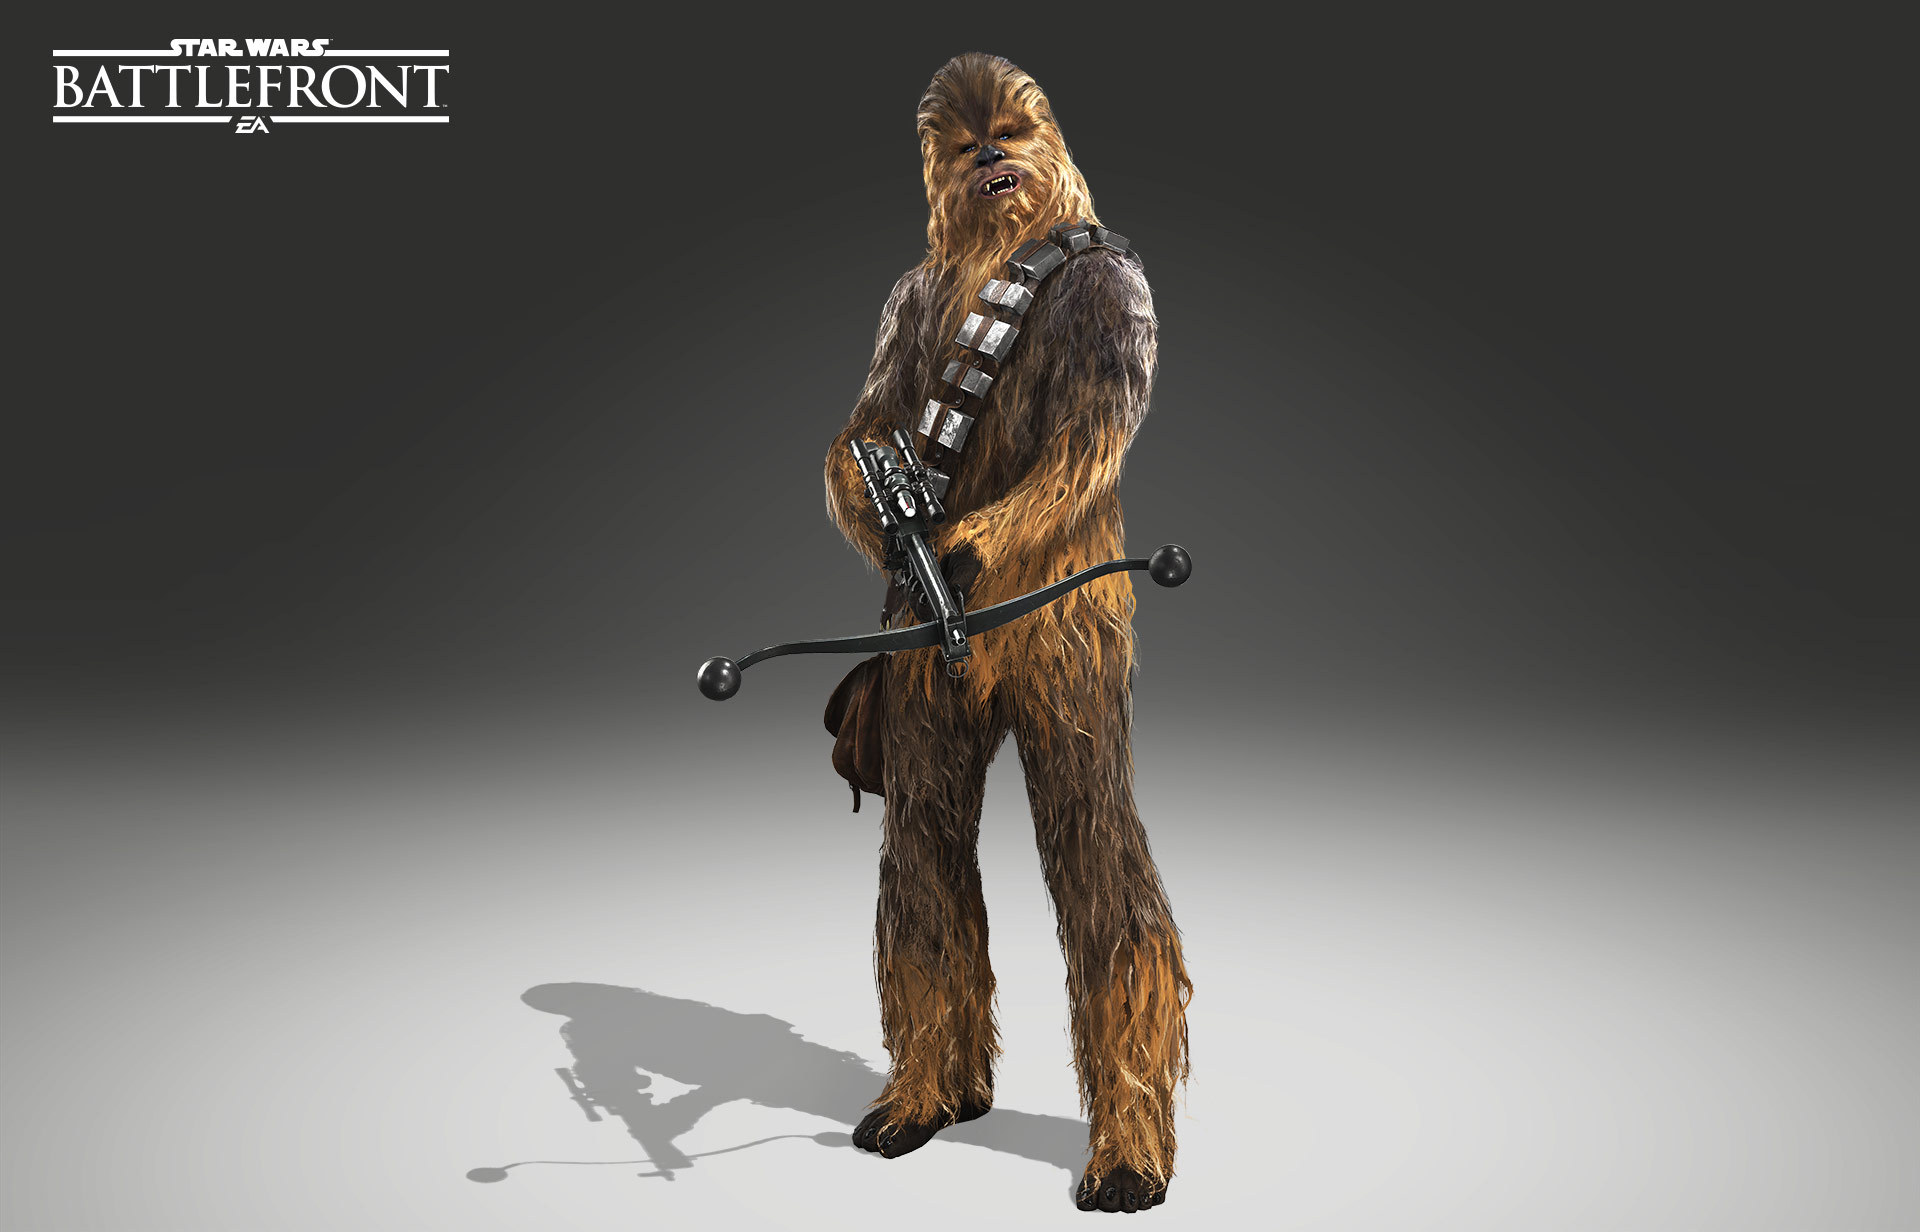 Chewbacca in Star Wars Battlefront 2: best cards and tips